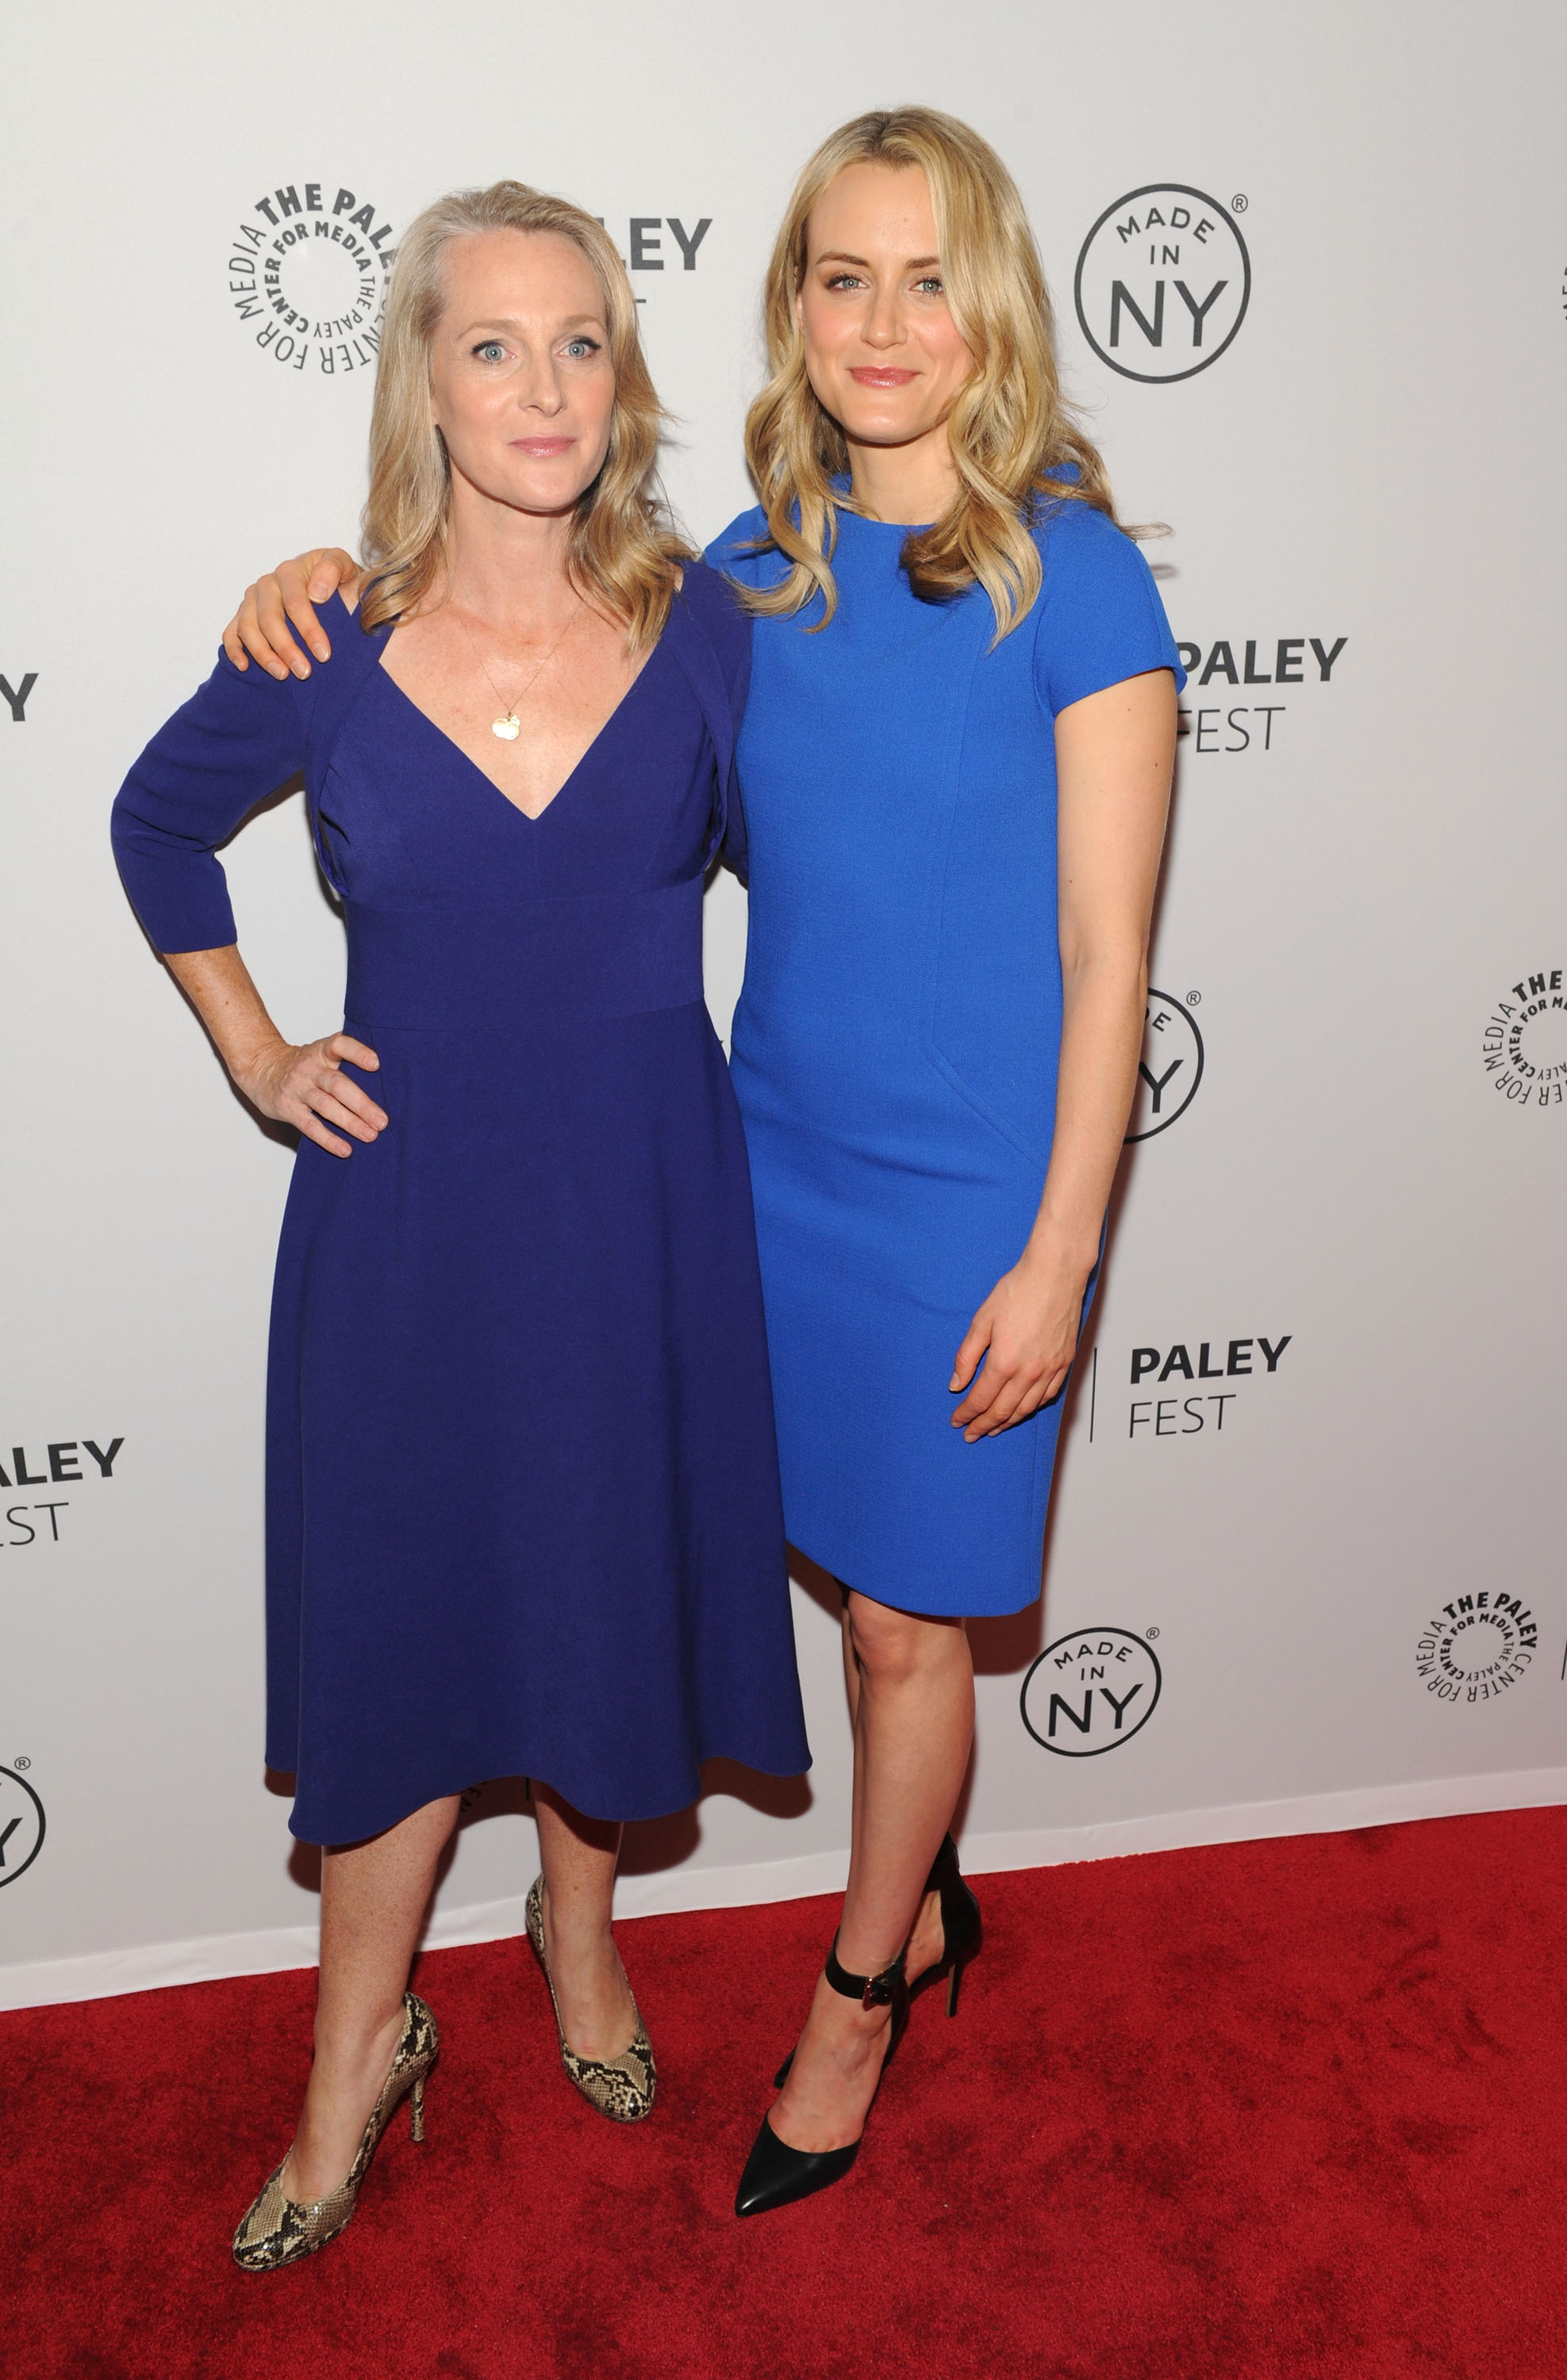 Piper Kerman and Taylor Schilling (R) attend 'Orange Is the New Black' during 2013 PaleyFest: Made In New York at The Paley Center for Media on October 2, 2013 in New York City.